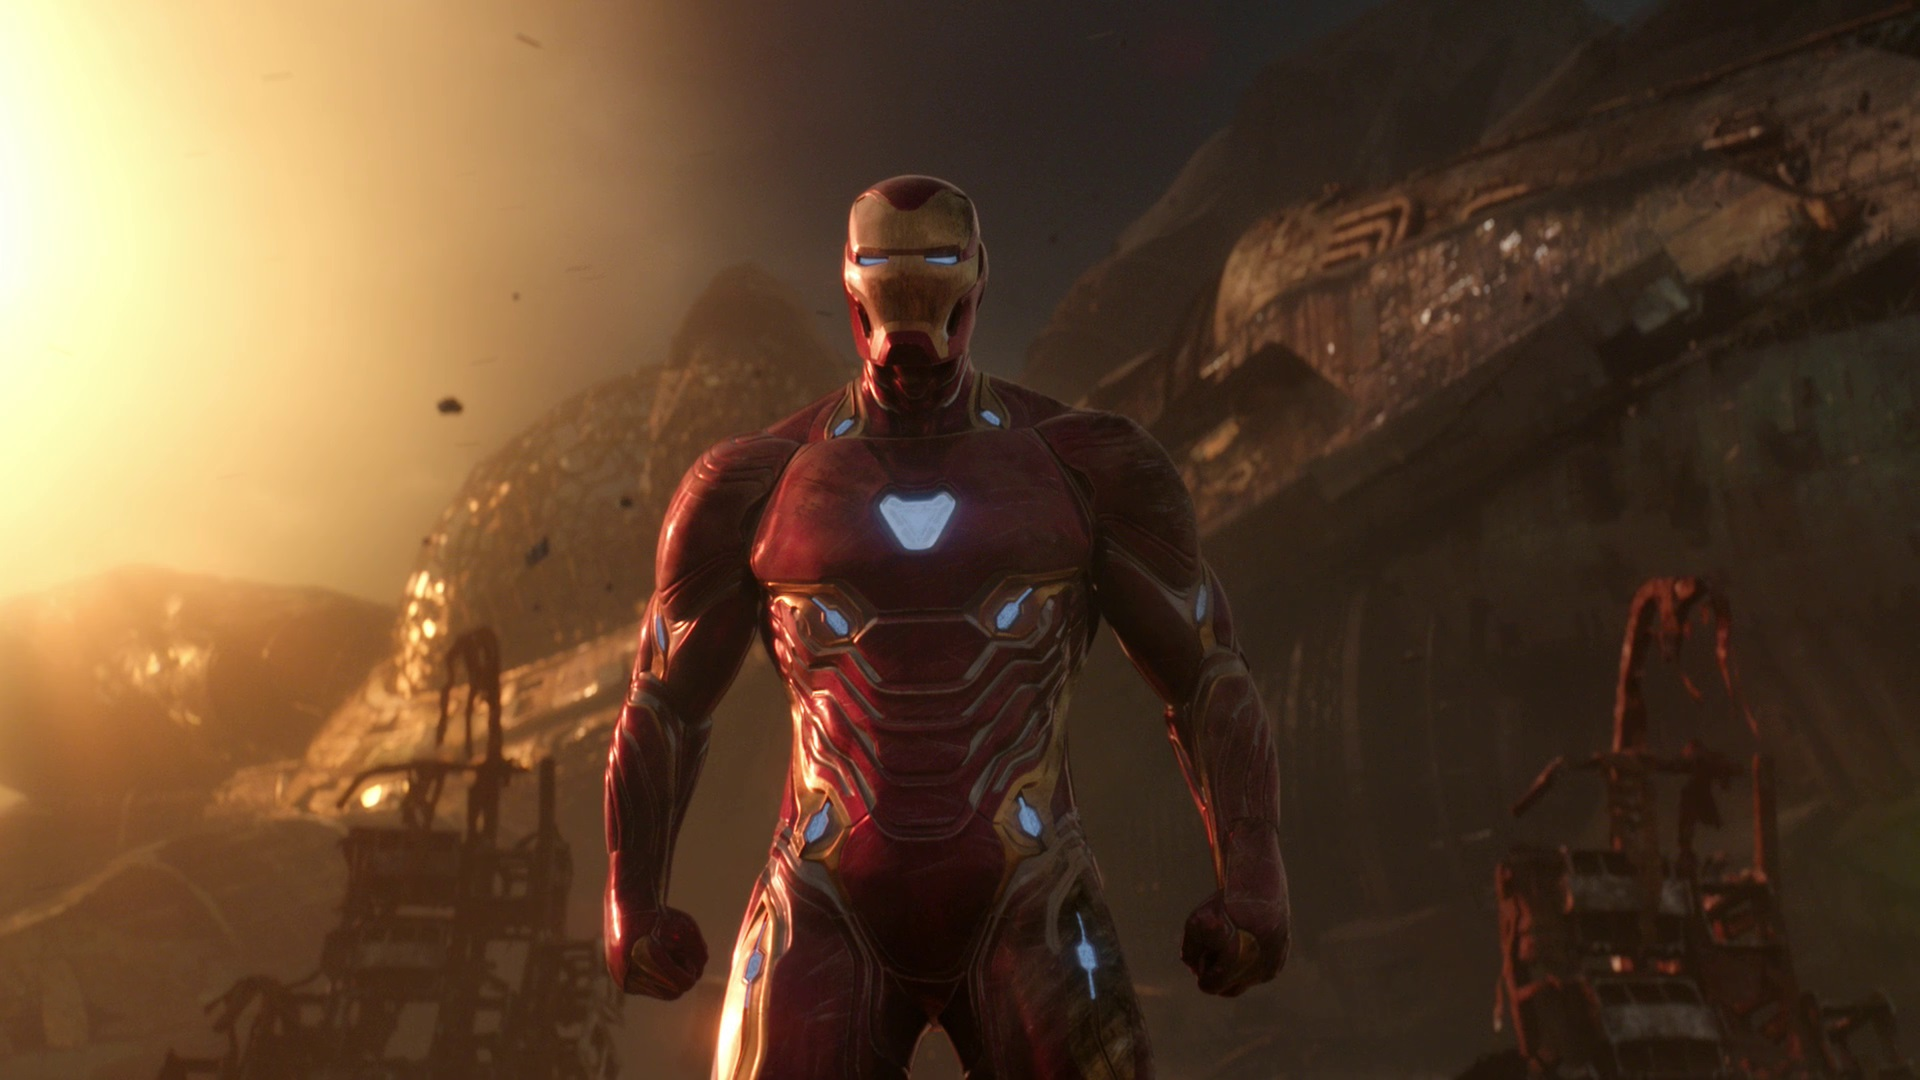 Iron Man's Endgame suit was meant to speak to both his character arc and attachments